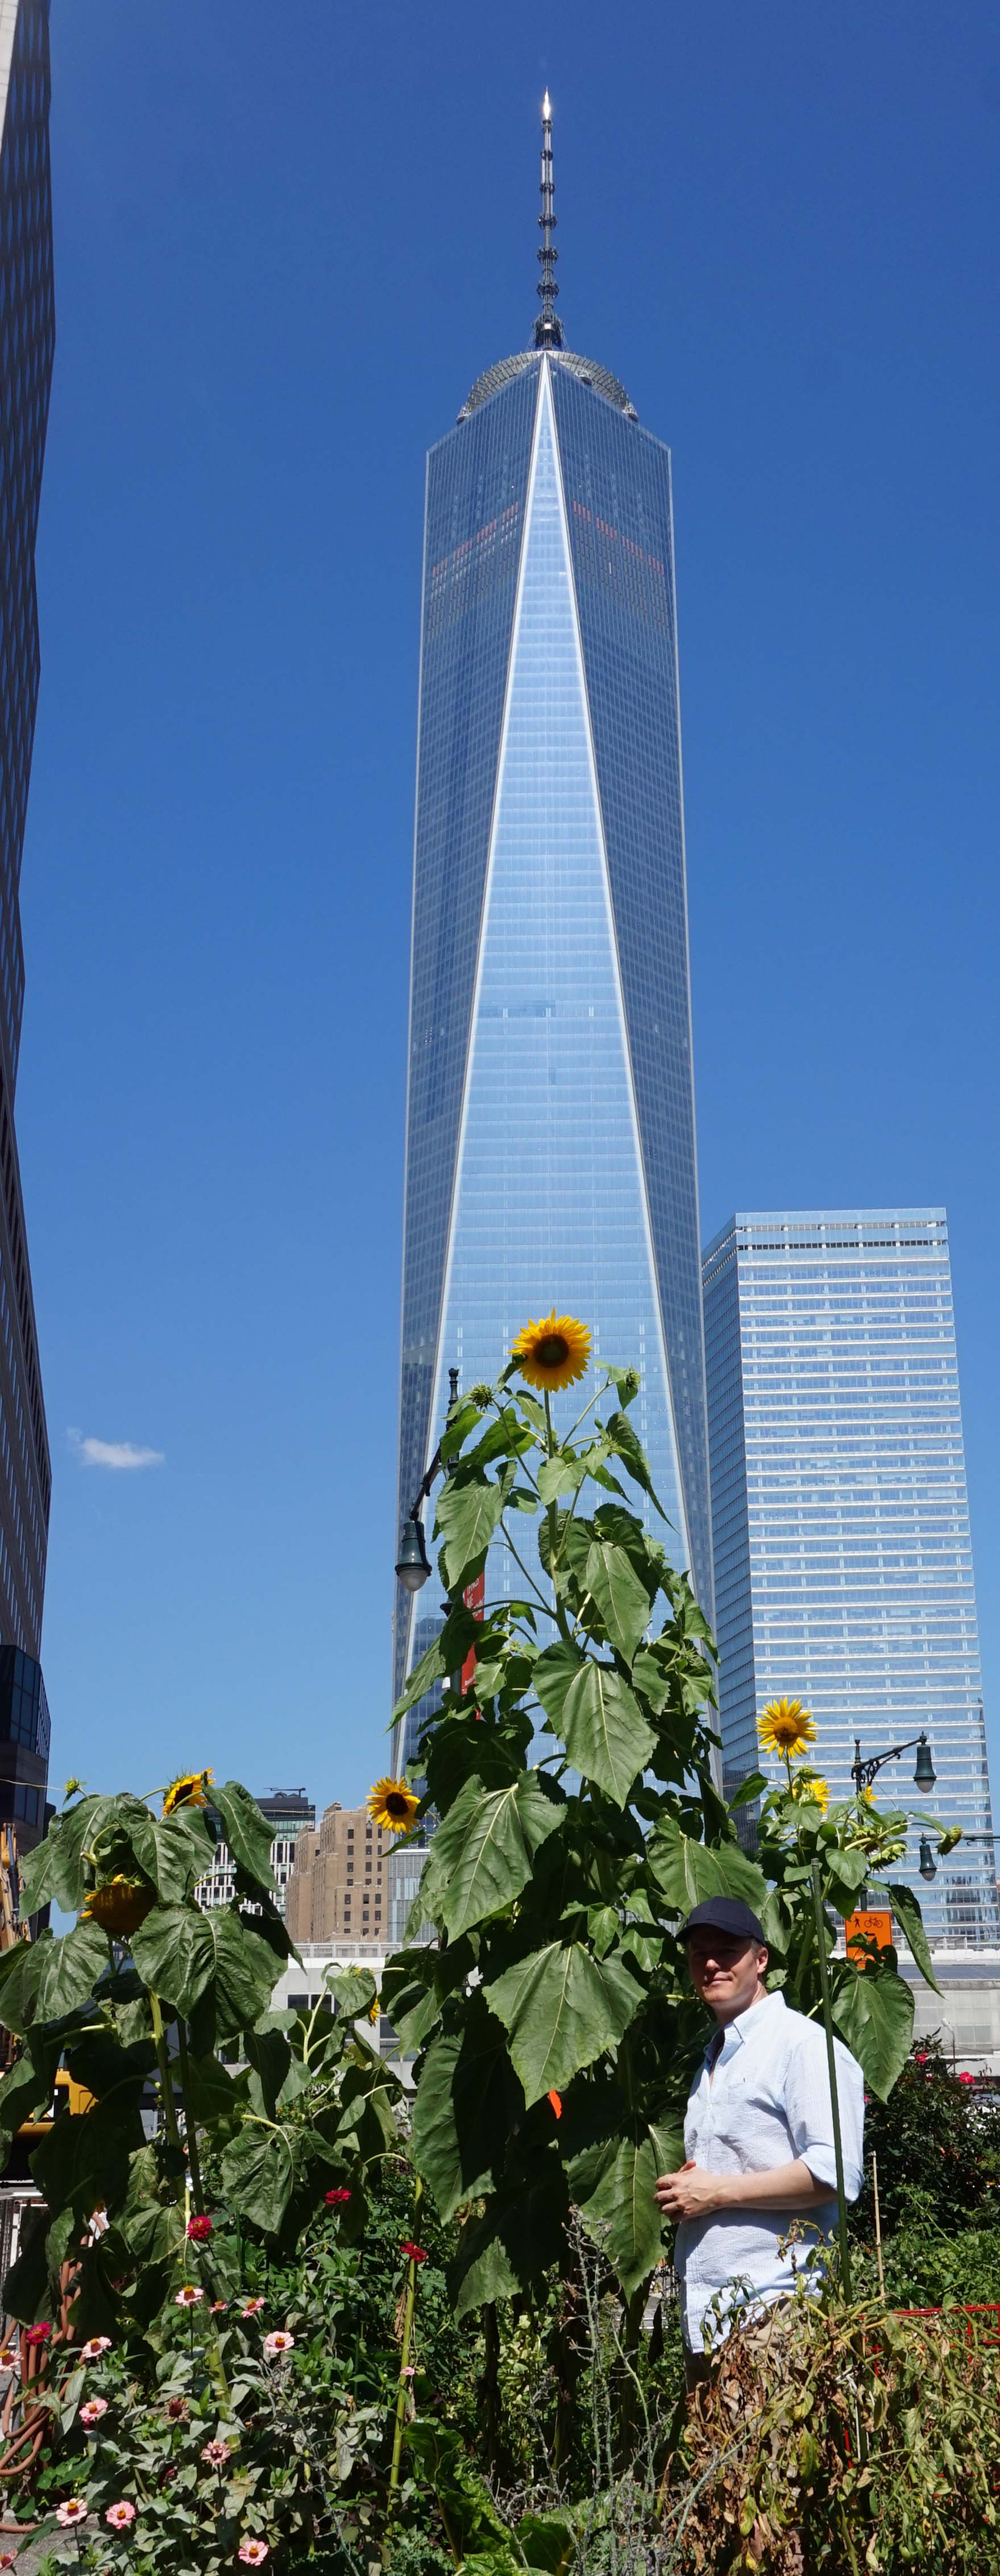 Me by sunflower Freedom Tower full 8-25-2014 low